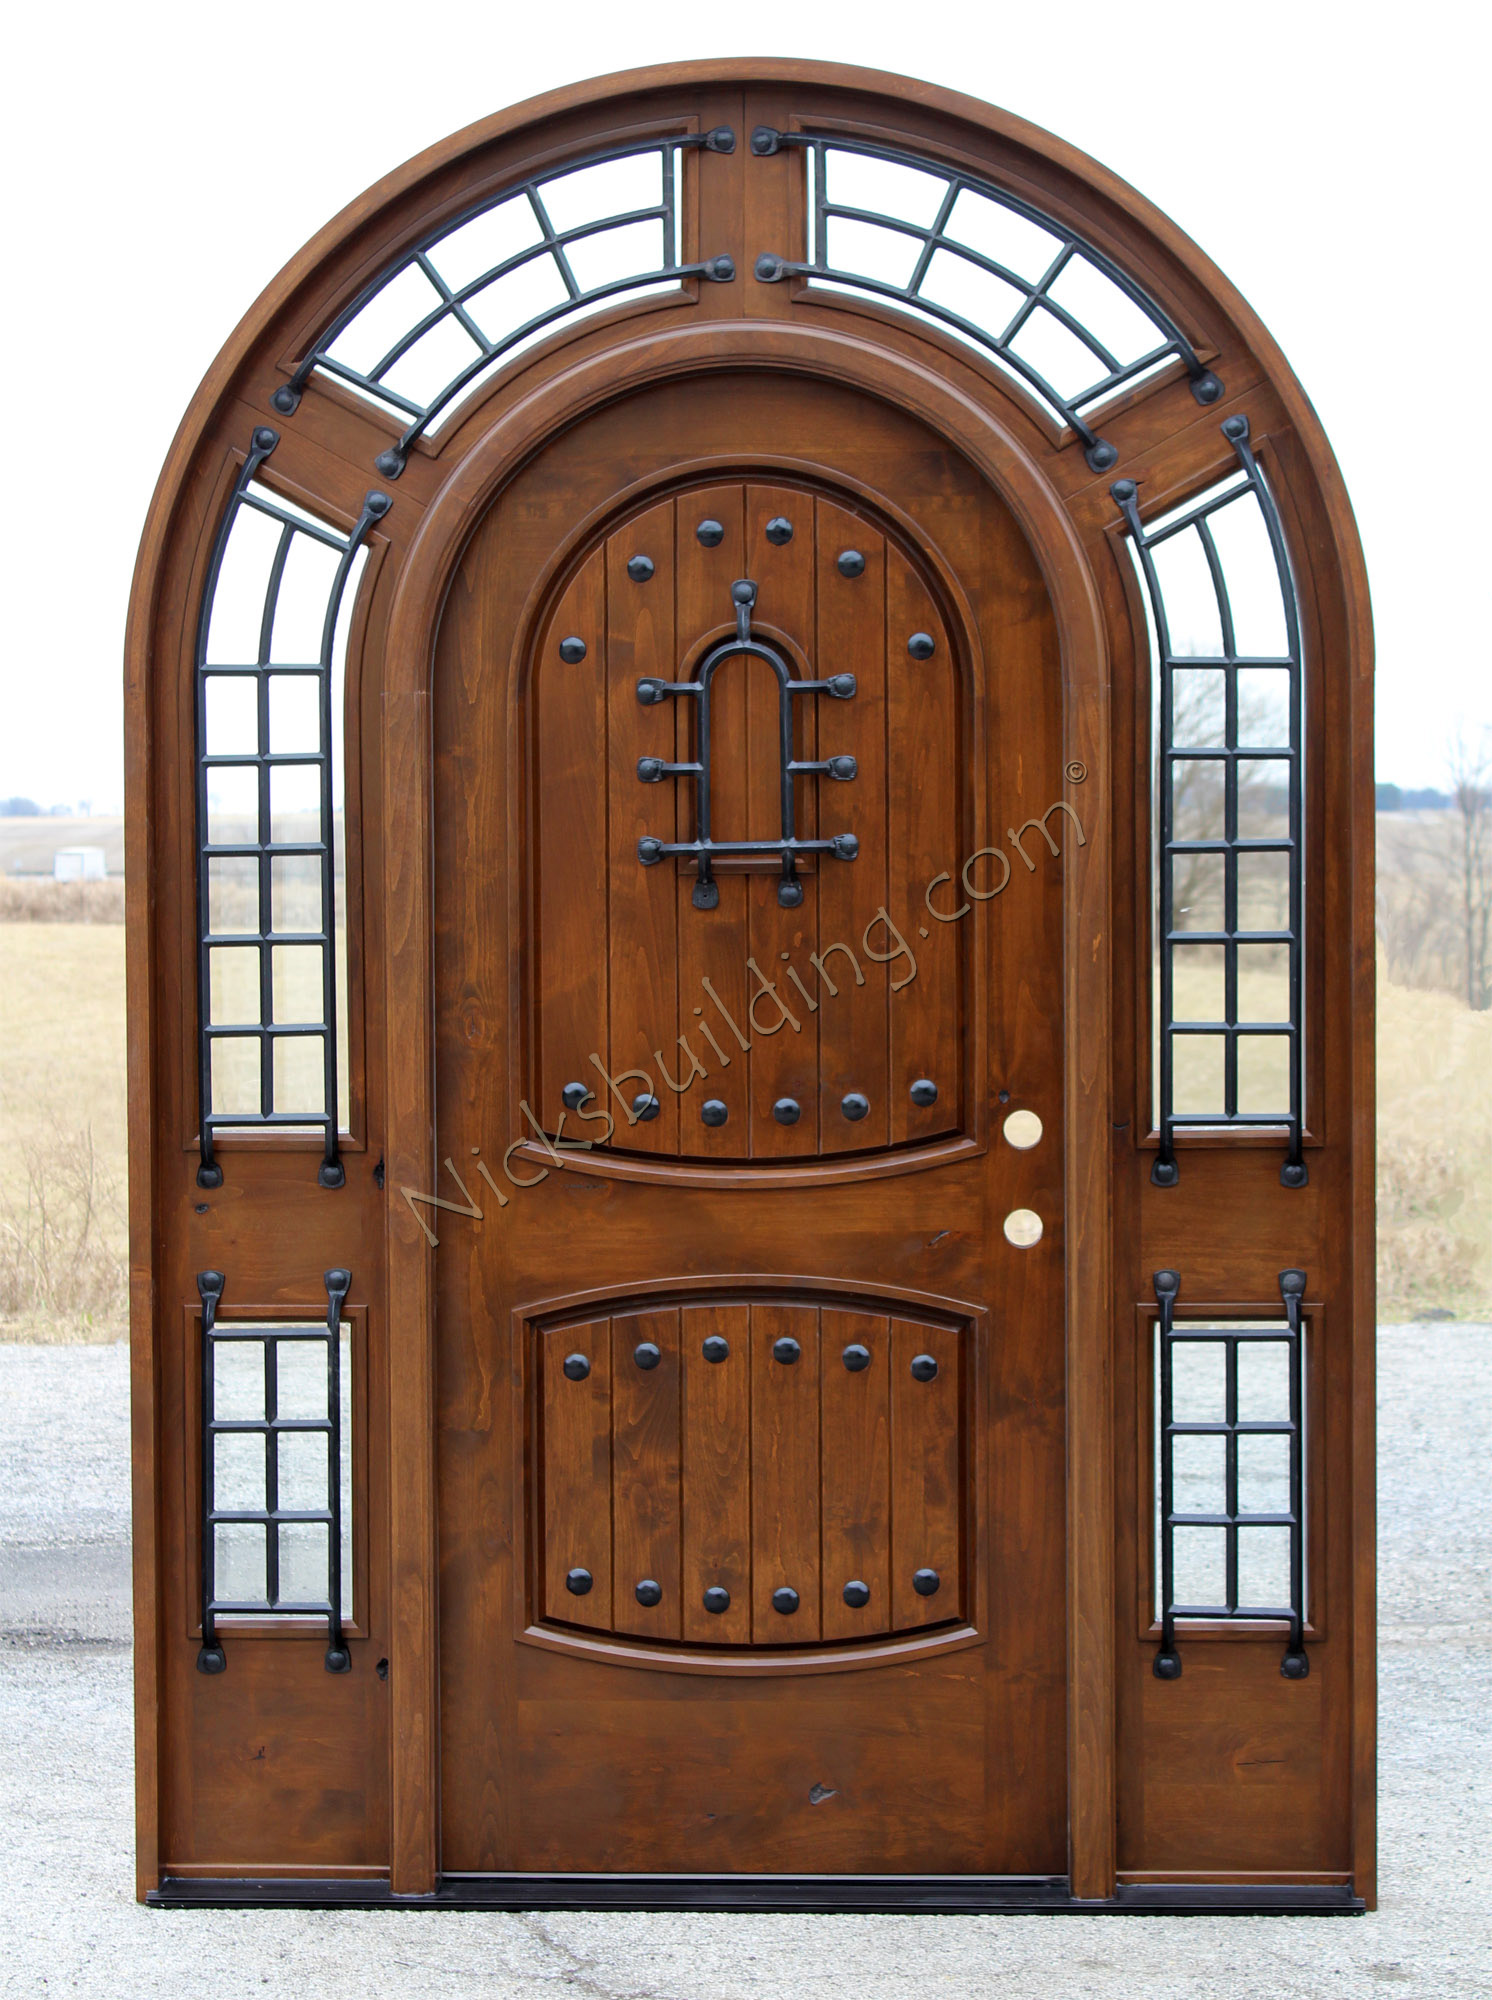 2000 #6D3D24 Round Top Door Pompano Door Stained.jpg image Arched Wood Entry Doors 40831492